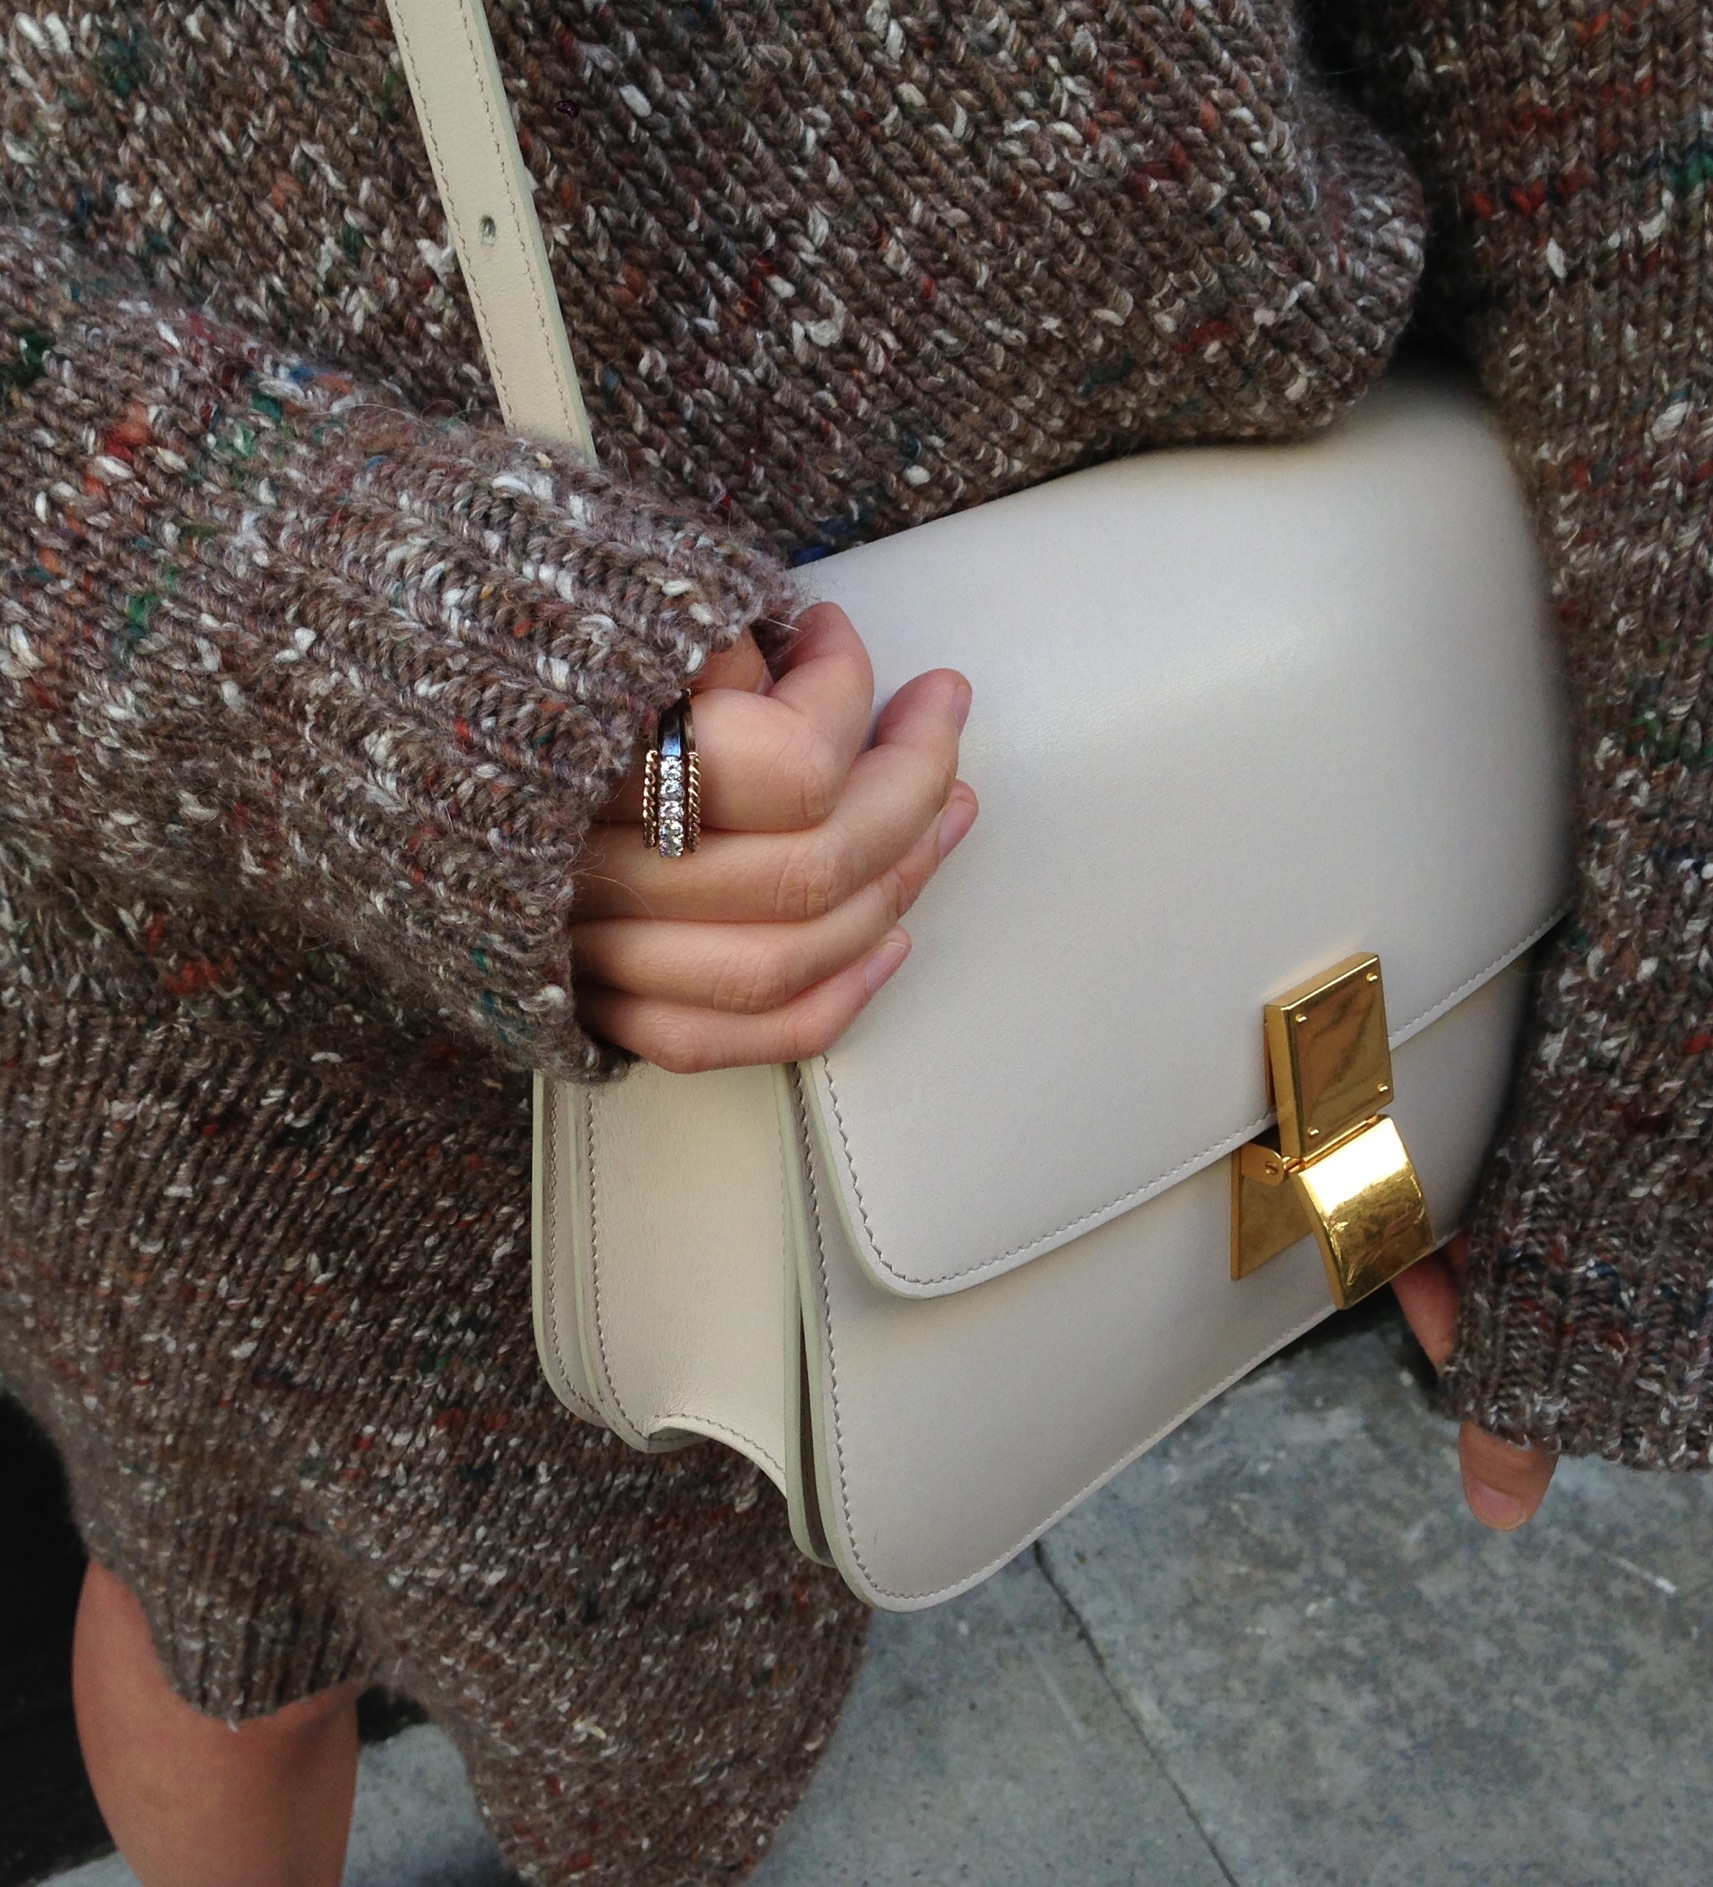 celine gray 7rv7  ivory celine box bag and stella mccartney chunky knit details